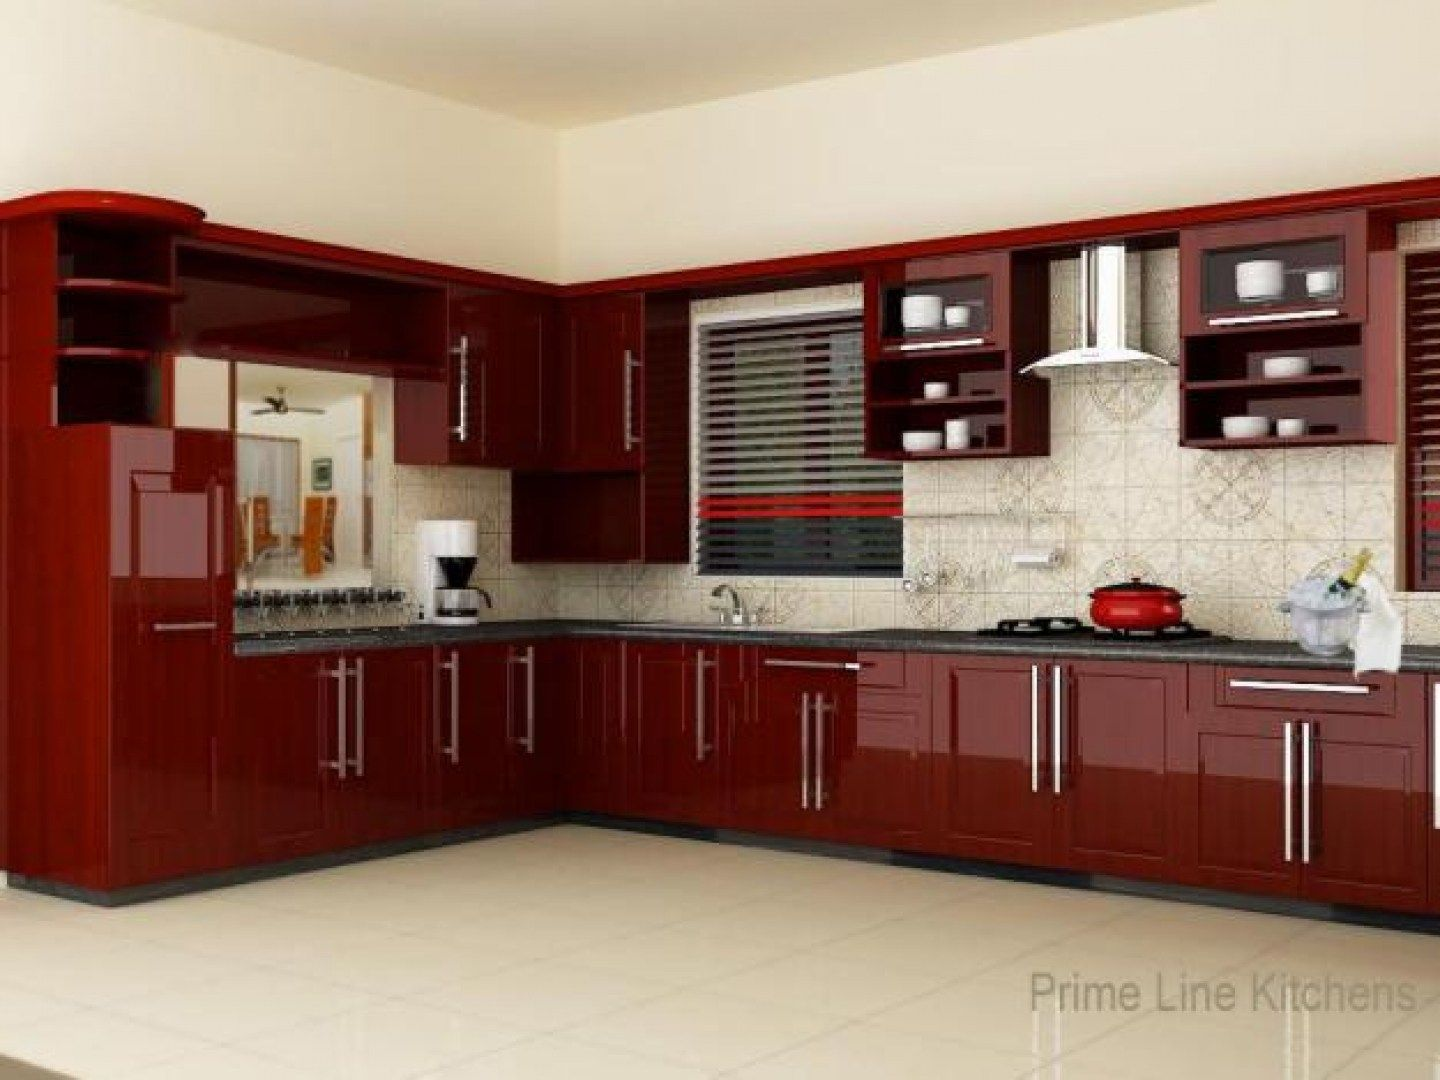 Kitchen design ideas kitchen woodwork designs hyderabad for Lifestyle kitchen units